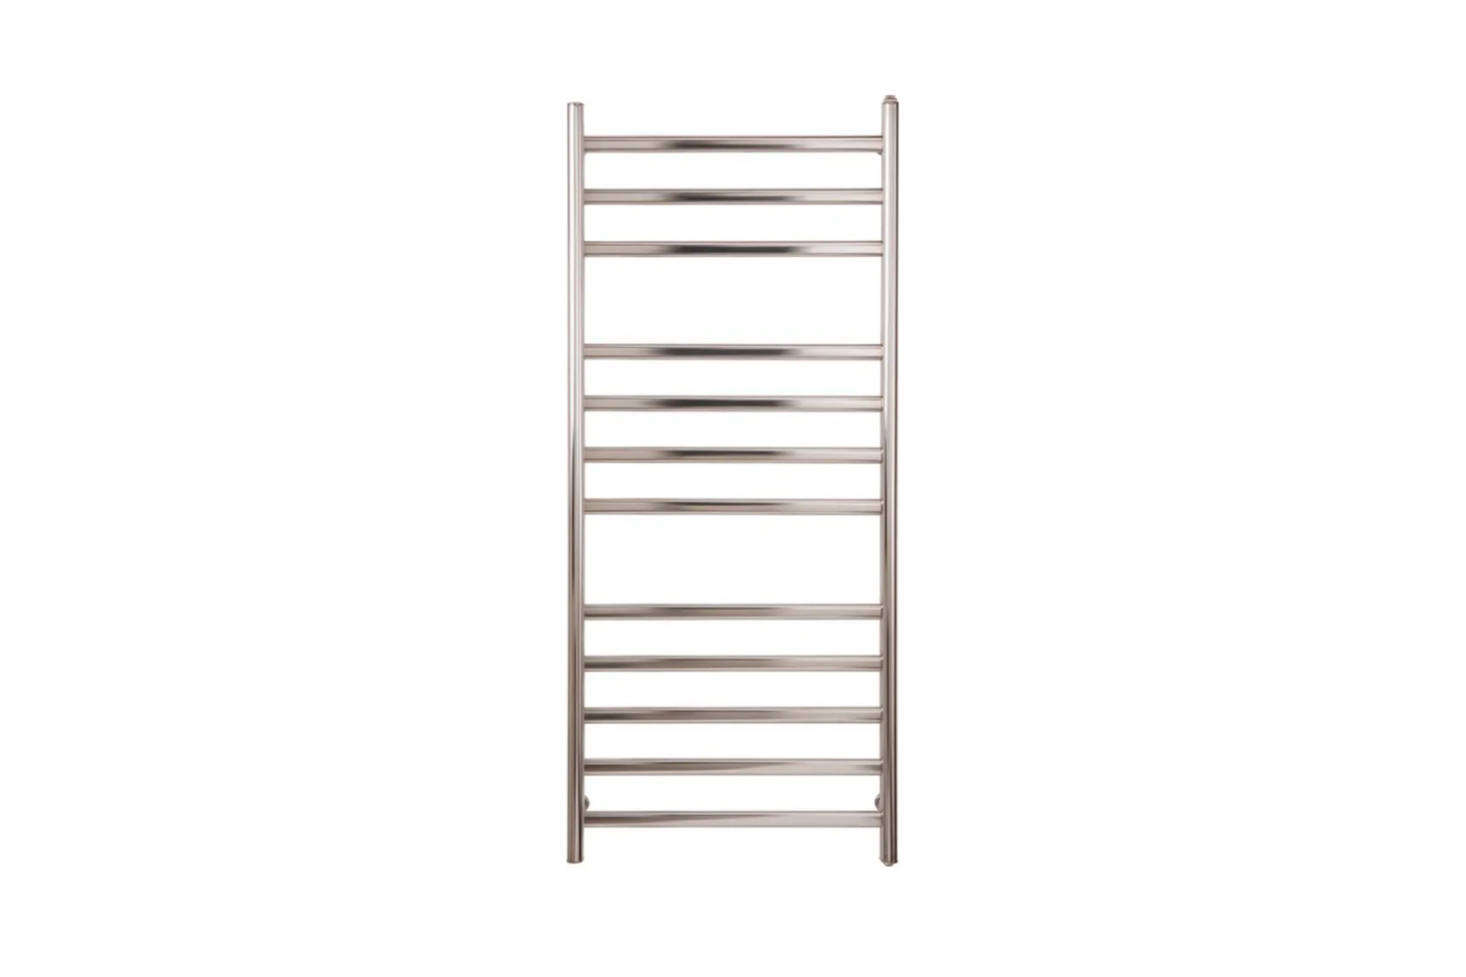 The Myson Diamond Electric Towel Warmer in Matte and Bright Stainless Steel is $328.50 at Quality Bath.